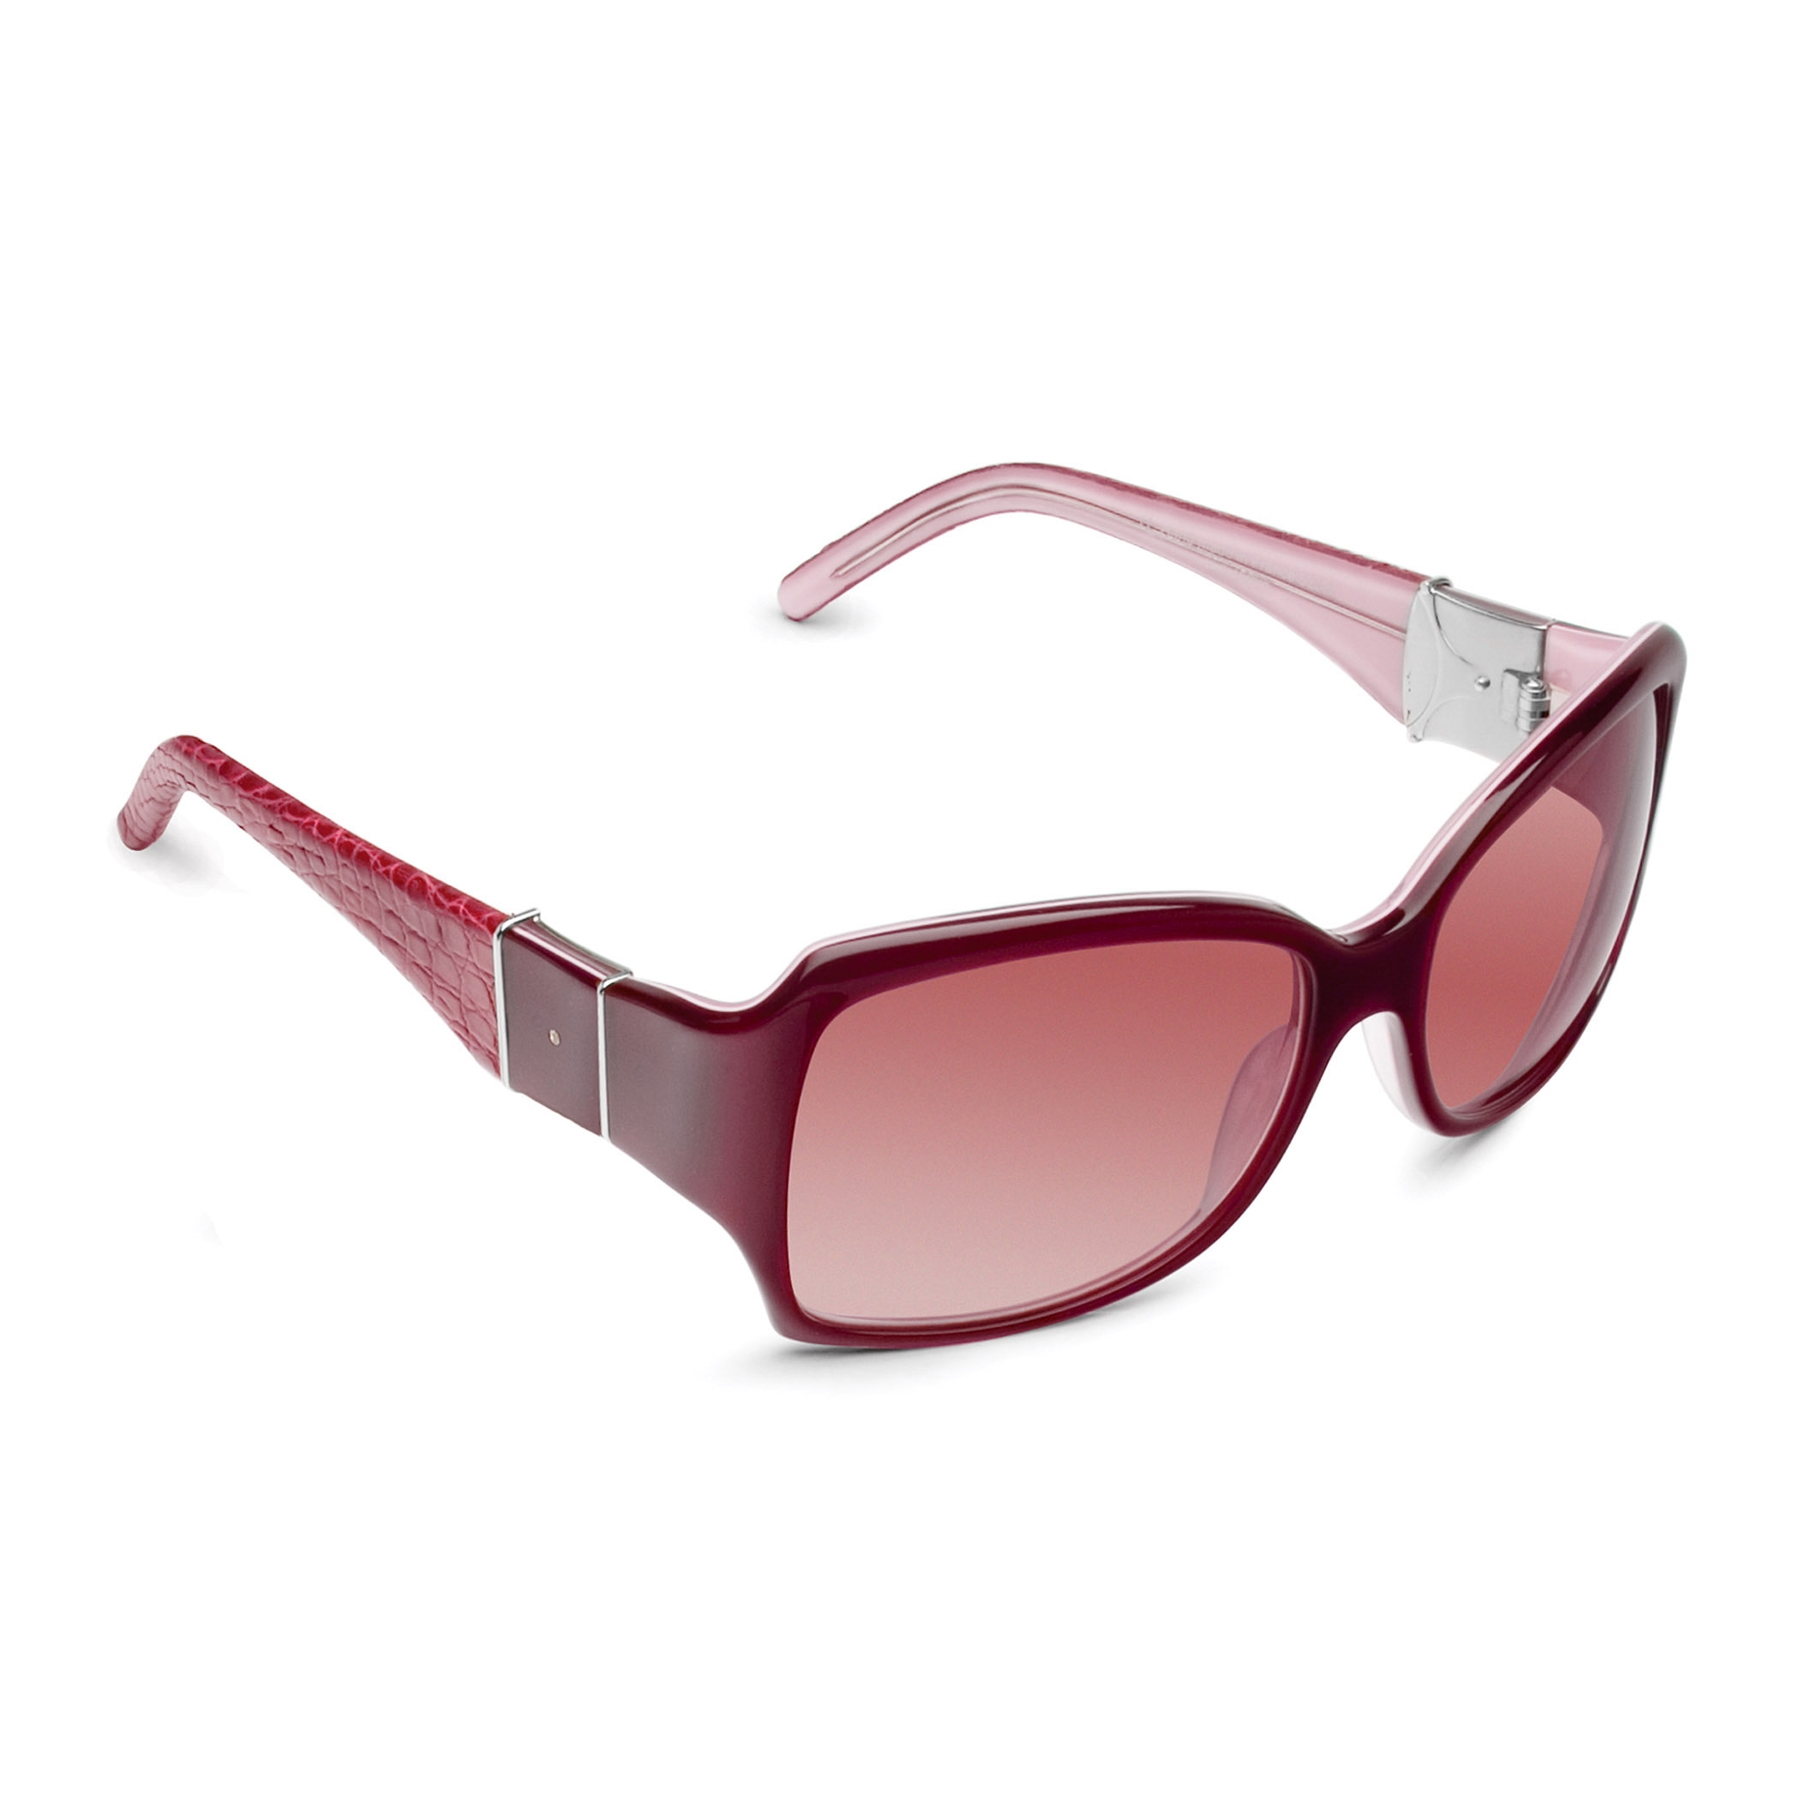 ROBERT MARC ACETATE SUNGLASSES